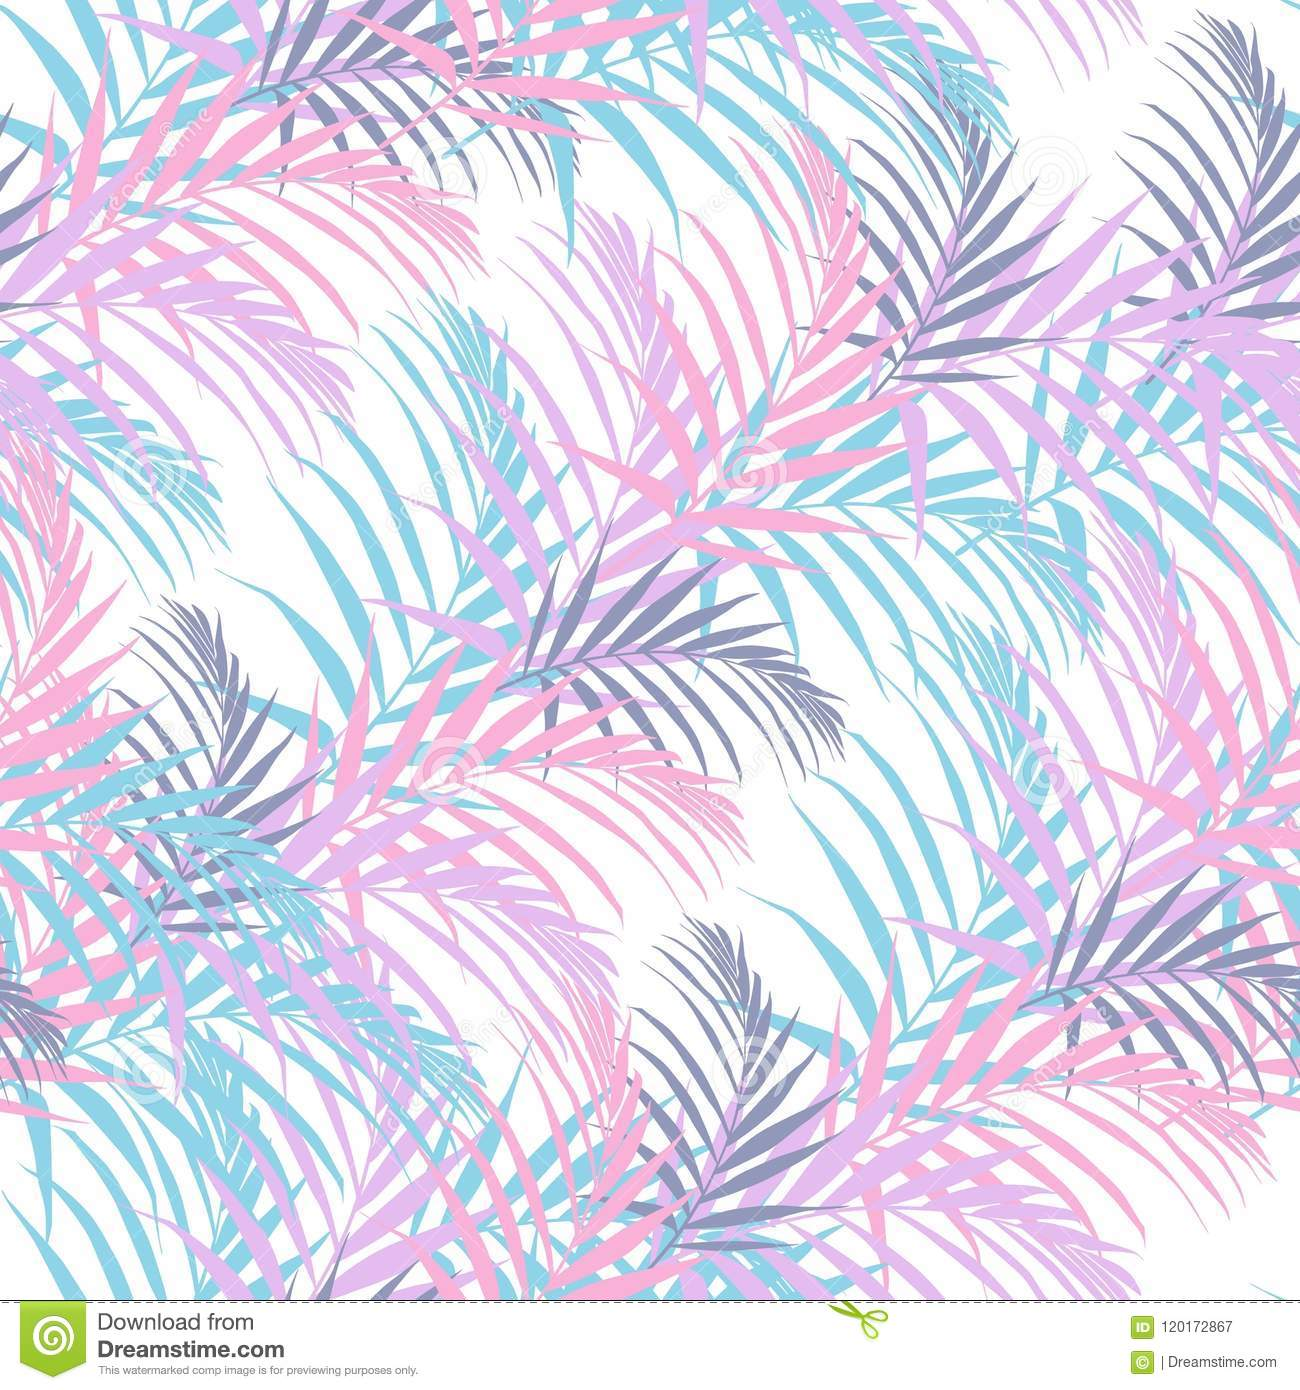 Beach Cheerful Seamless Pattern Wallpaper Of Tropical Candy Color Palm Leaves Of Palm Trees On A White Background Stock Illustration Illustration Of Fabric Design 120172867